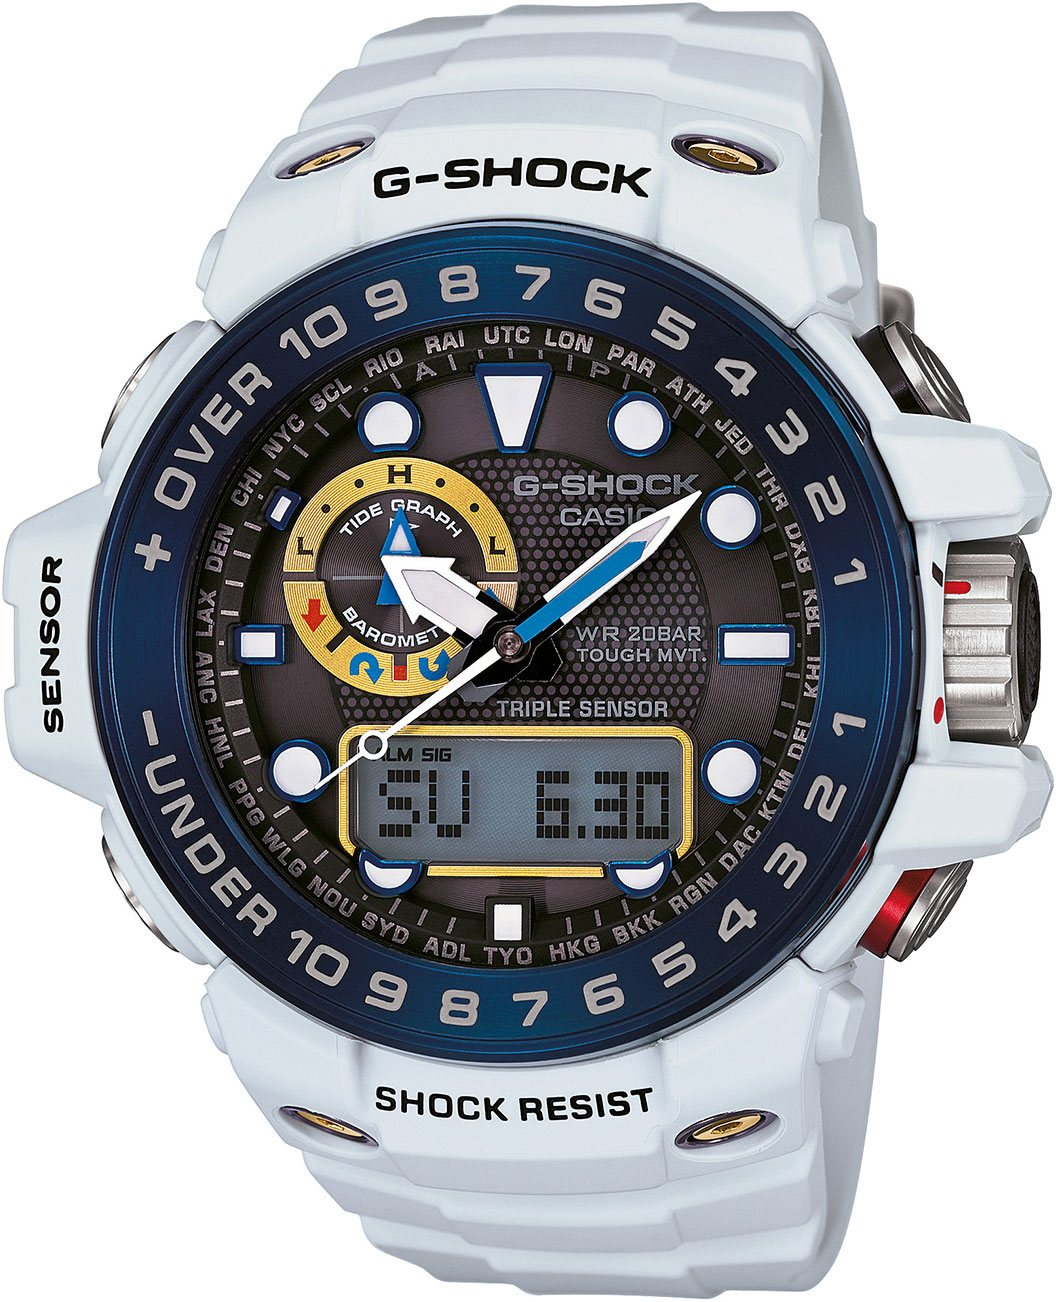 Casio G-shock G-Premium GWN-1000E-8A casio g shock gulfmaster tough mvt multi band 6 gwn 1000e 8ajf men s japan model